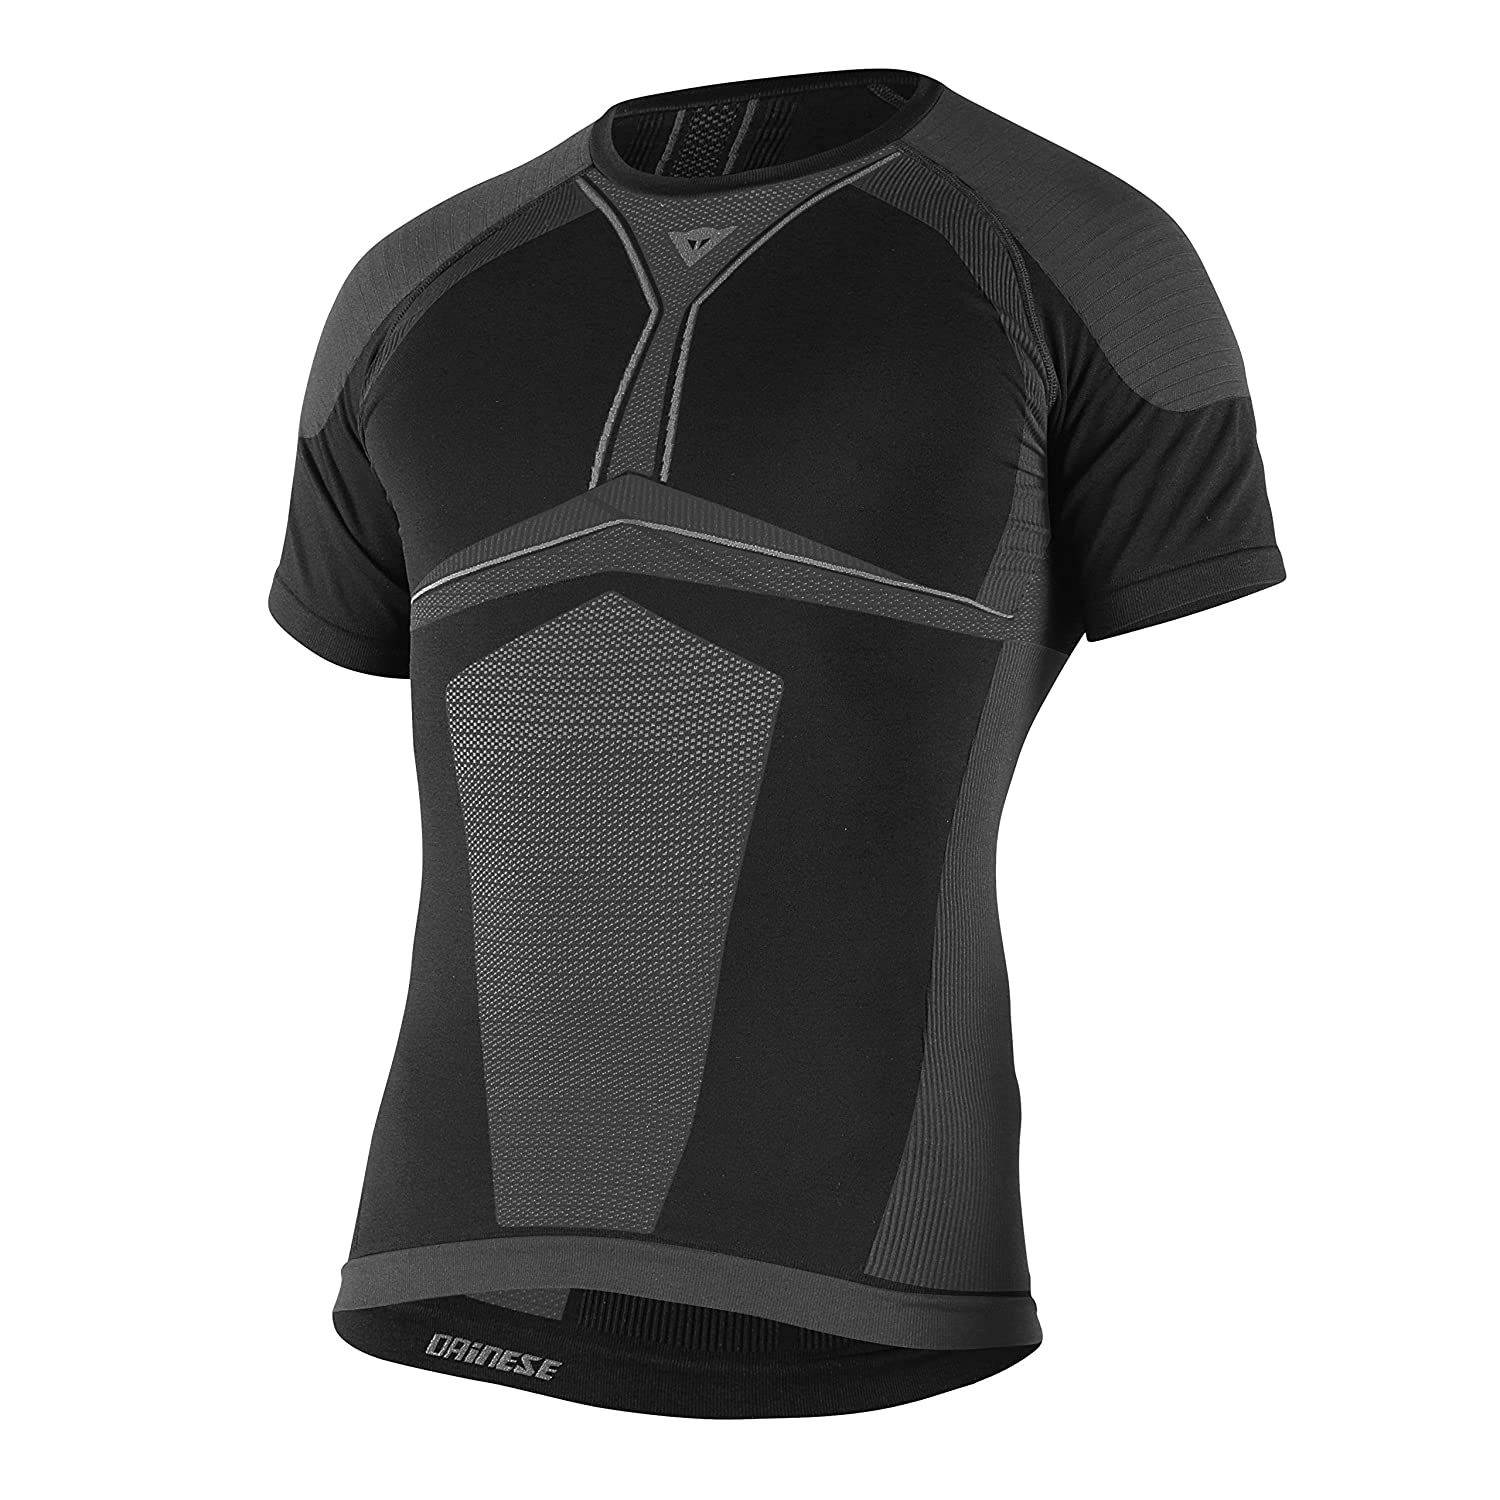 Dainese-D-CORE DRY TEE SS, Noir/Anthracite, Taille M 1915928_620_L